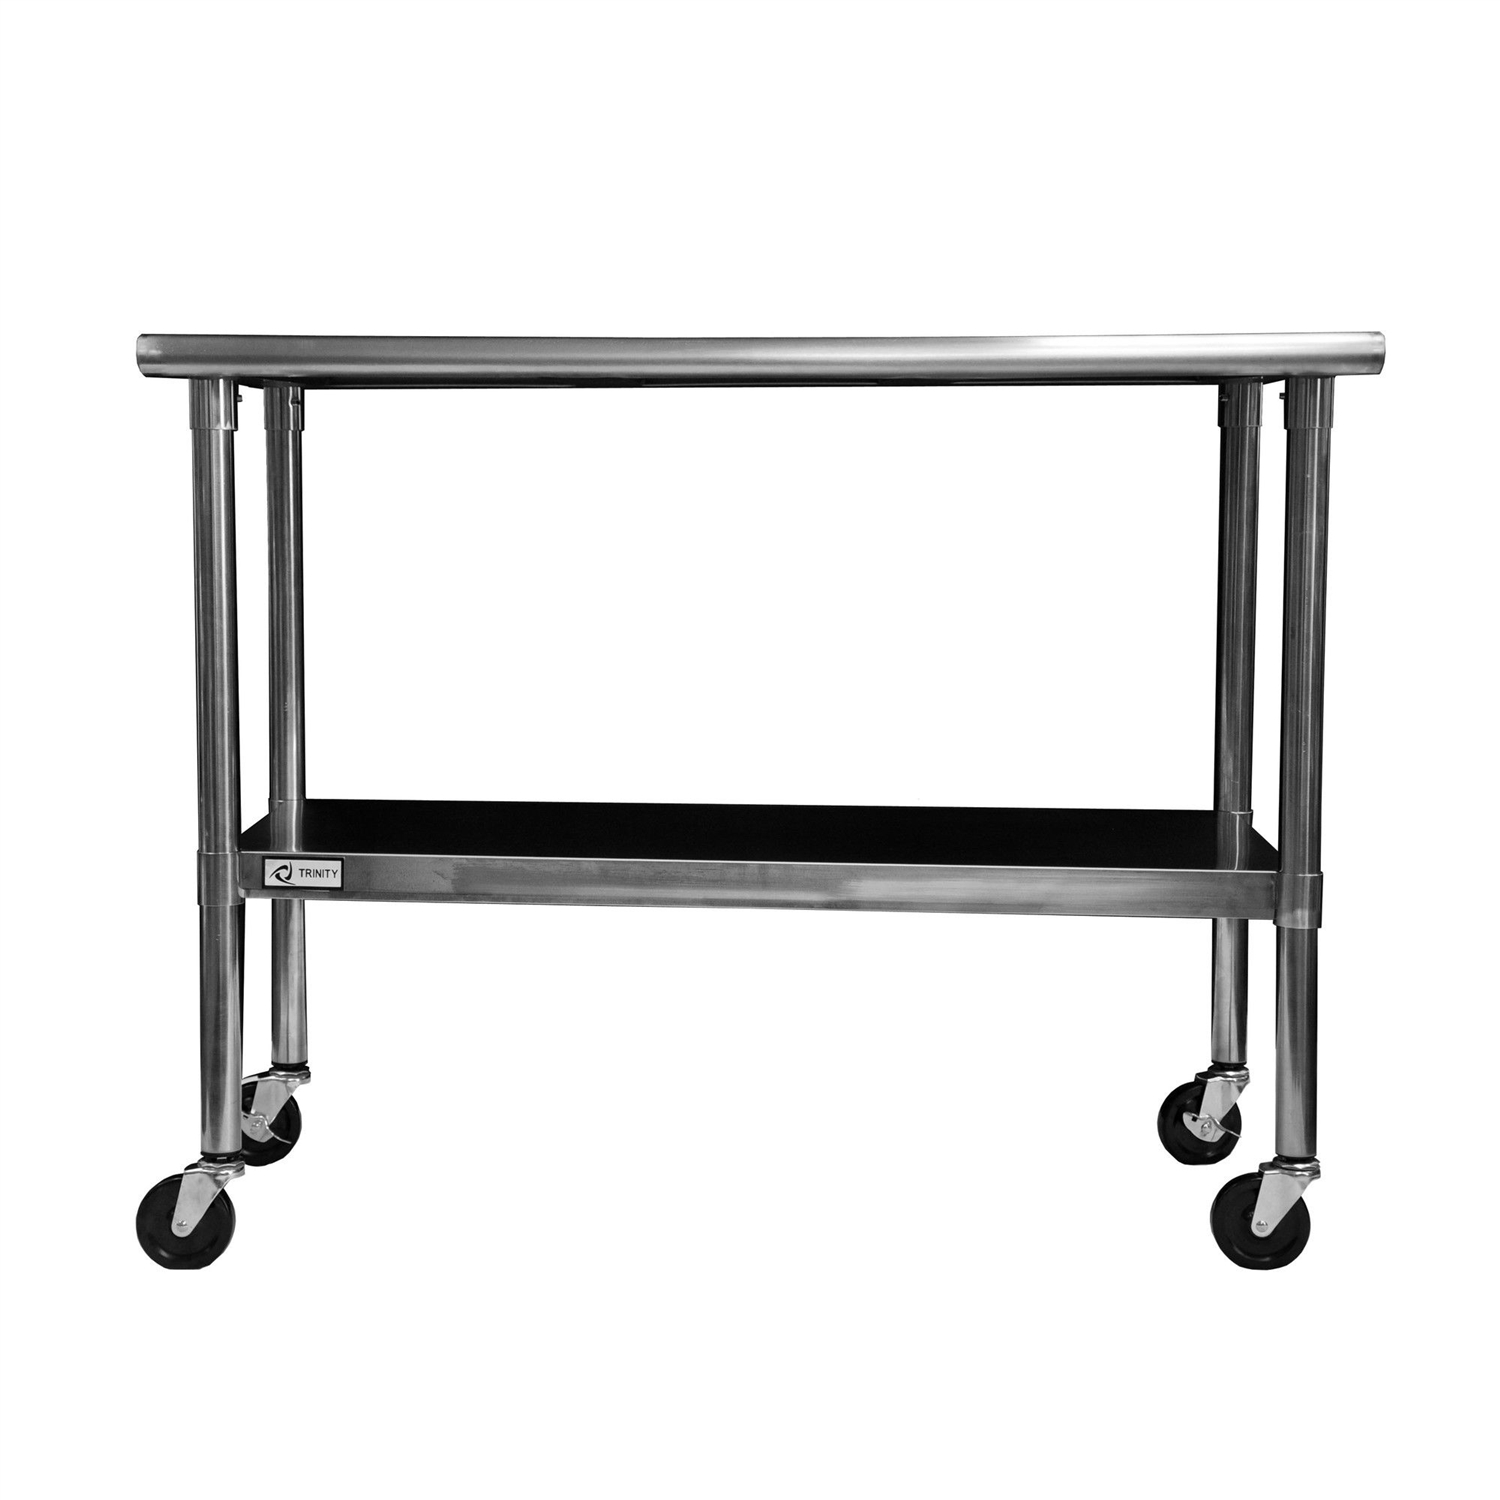 Kitchen Island With Locking Casters 2ft X 4ft Stainless Steel Top Kitchen Prep Table With